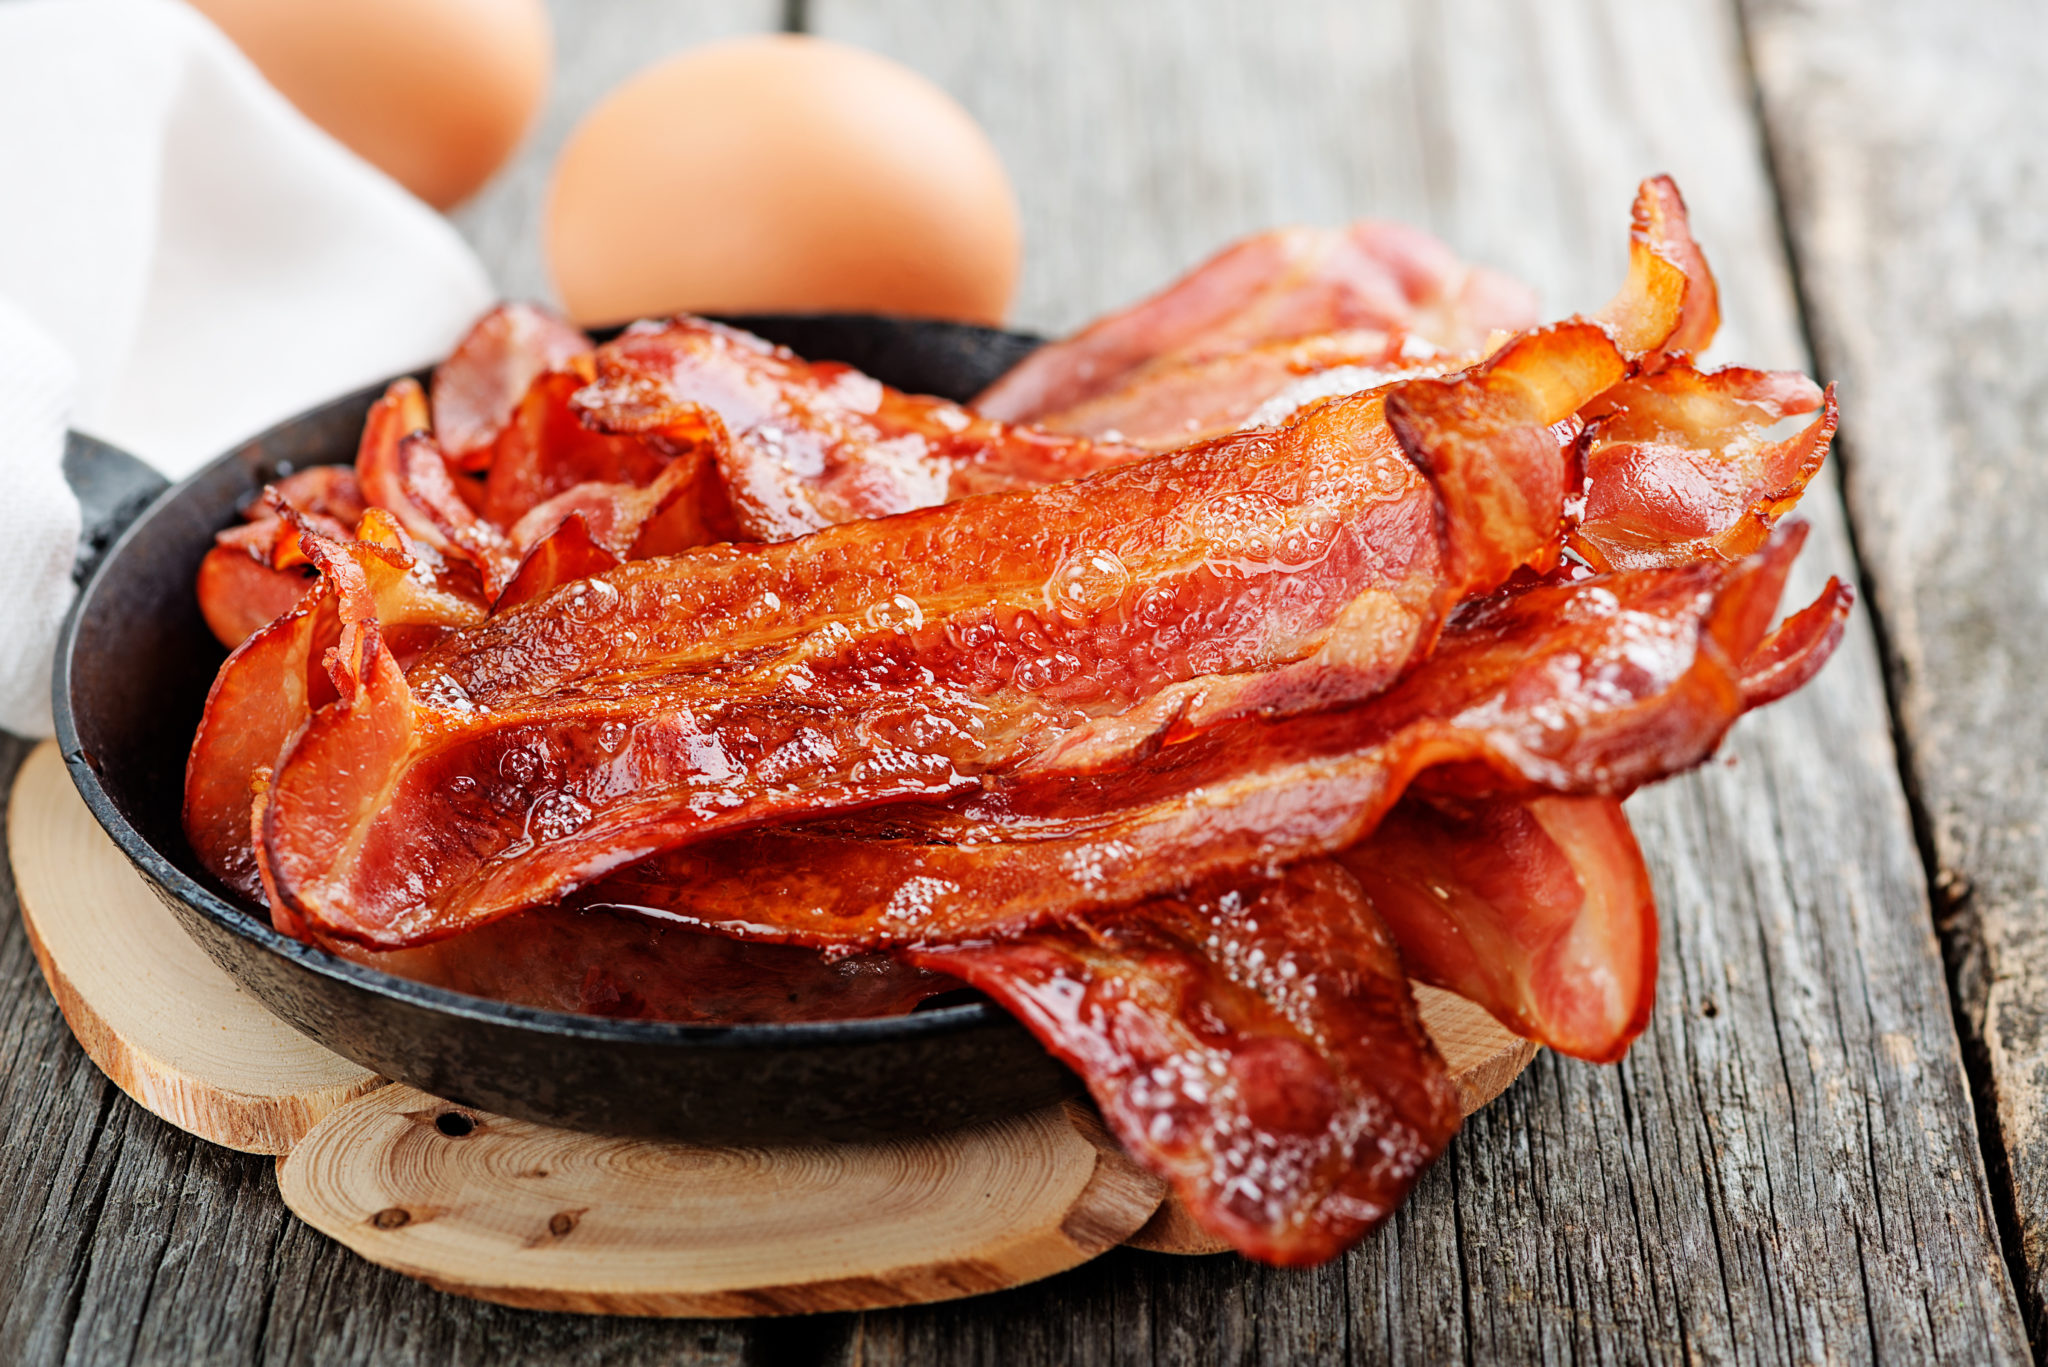 A rasher of bacon ups cancer risk?